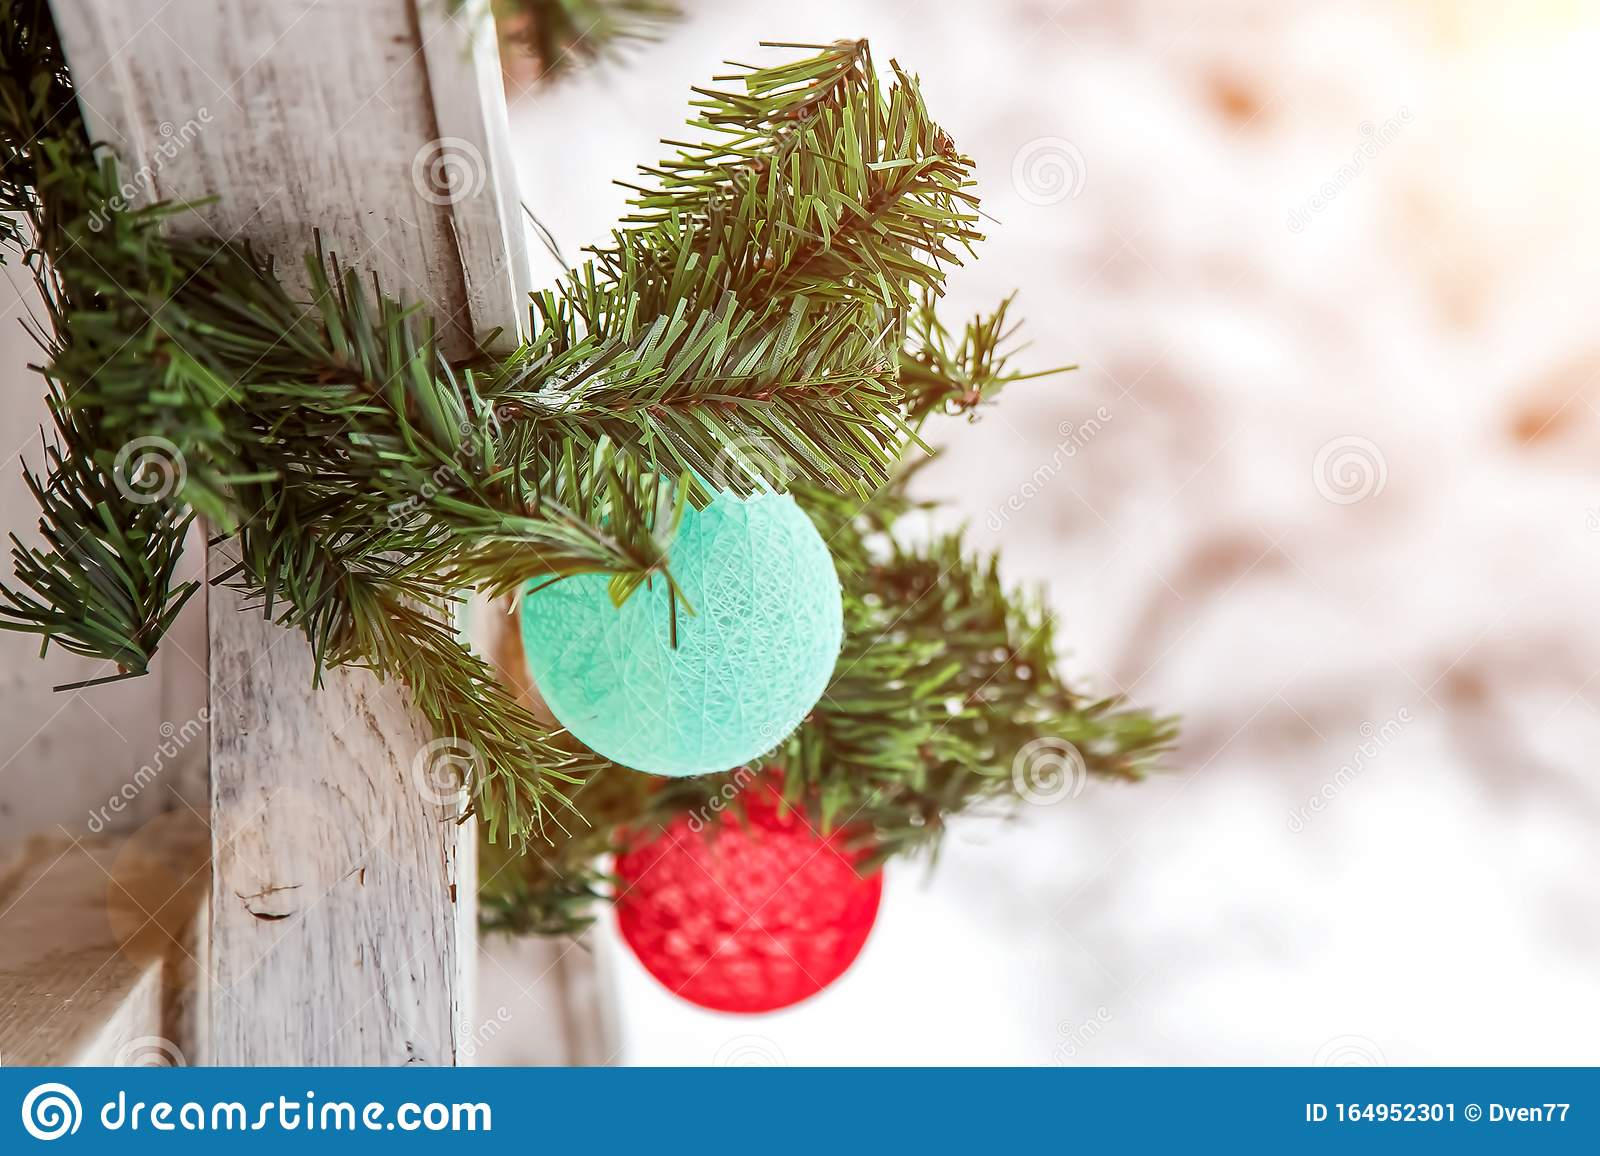 Christmas And New Year Decorations On The Street In The Snow A Mint And Red Balls Of Garland In The Form Of A Ball Of Thread Stock Image Image Of Pine